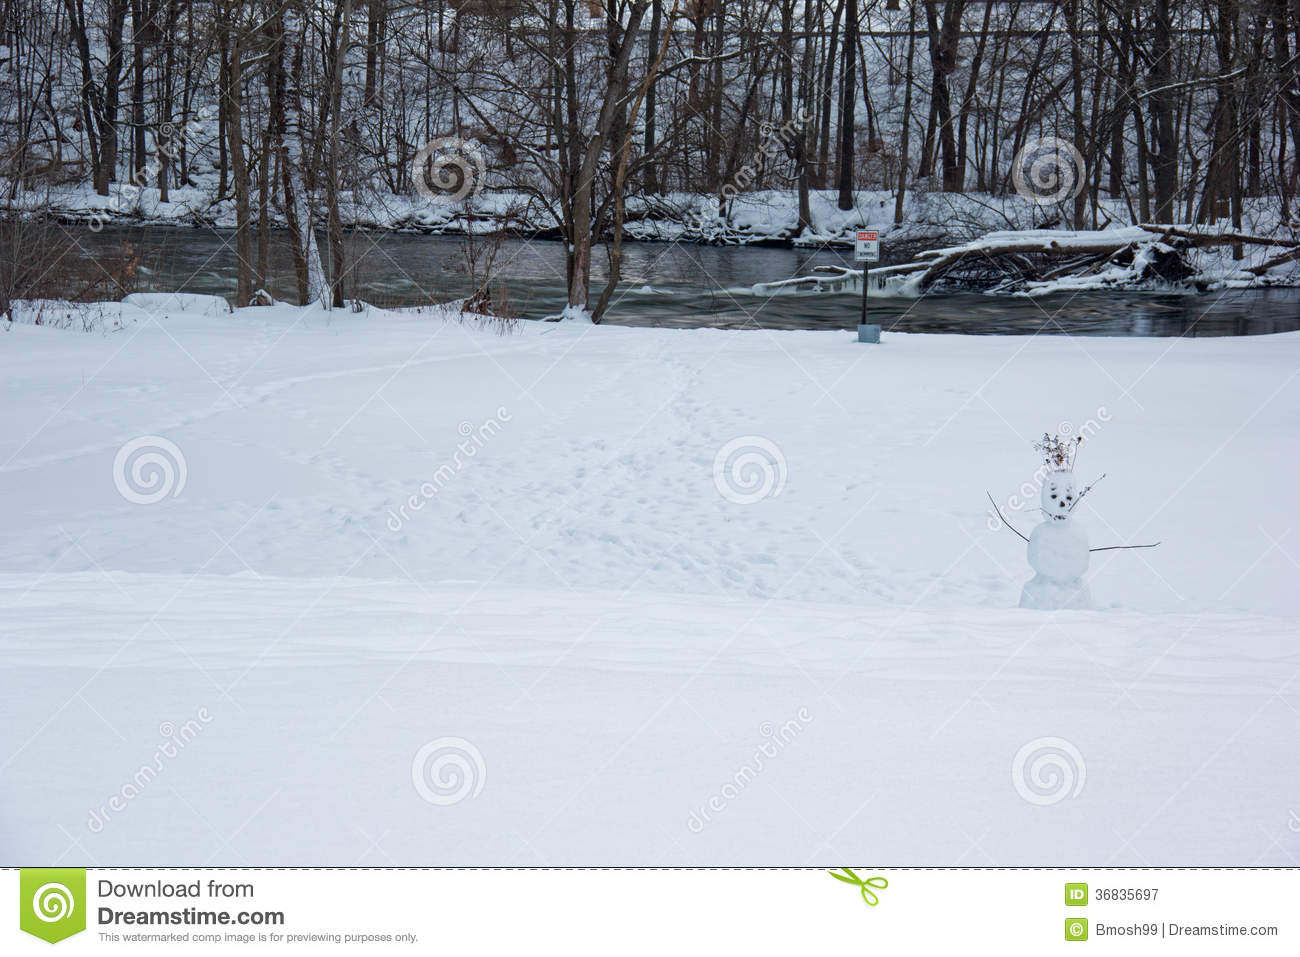 Lonely Snowman In A Cold Park Stock Image - Image of snowman, river